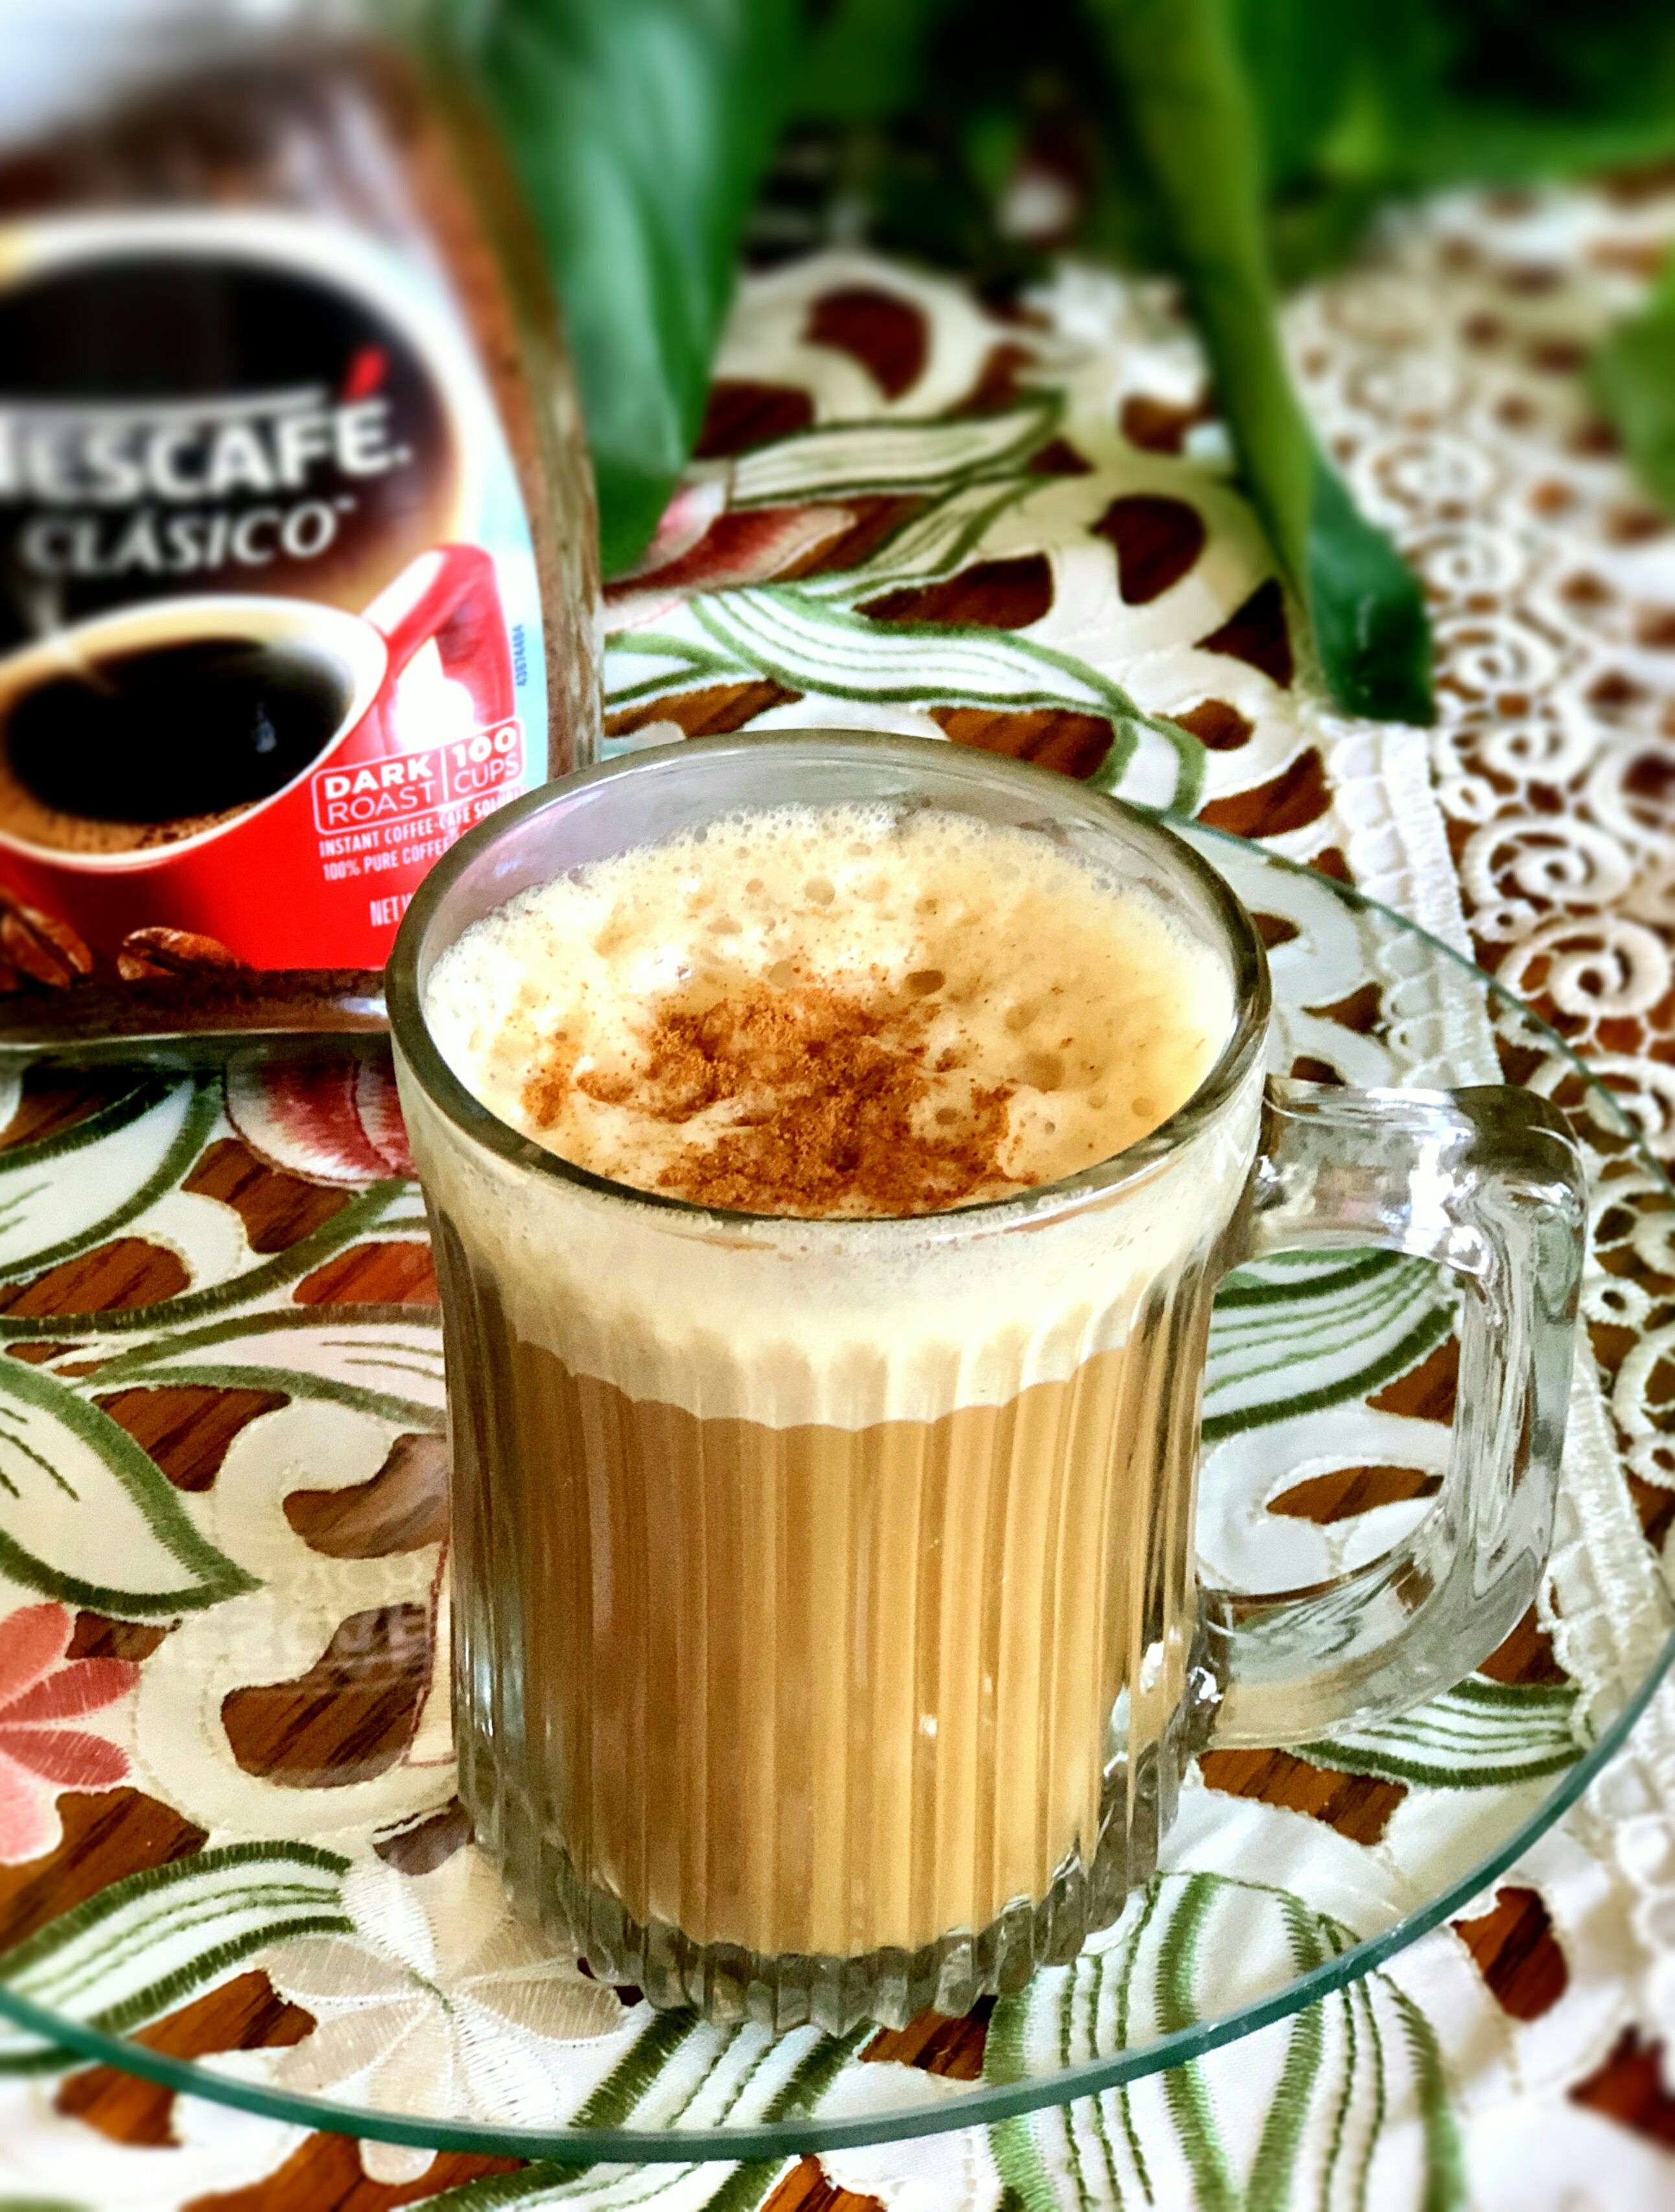 Nescafe Classic Instant Greek Coffee Decaf ** You can get